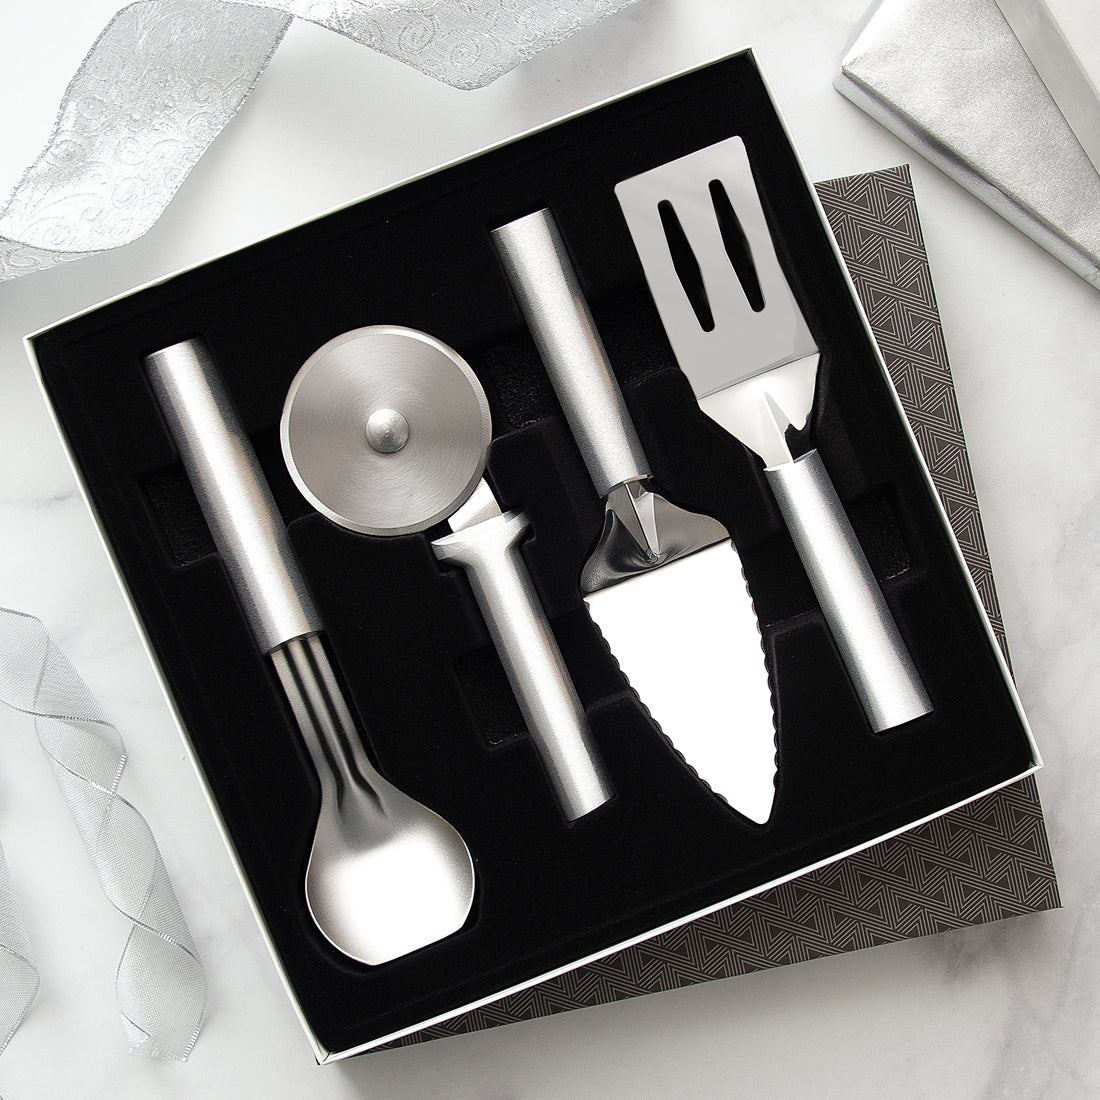 Rada Cutlery Ultimate Utensil Gift Set with silver handles.